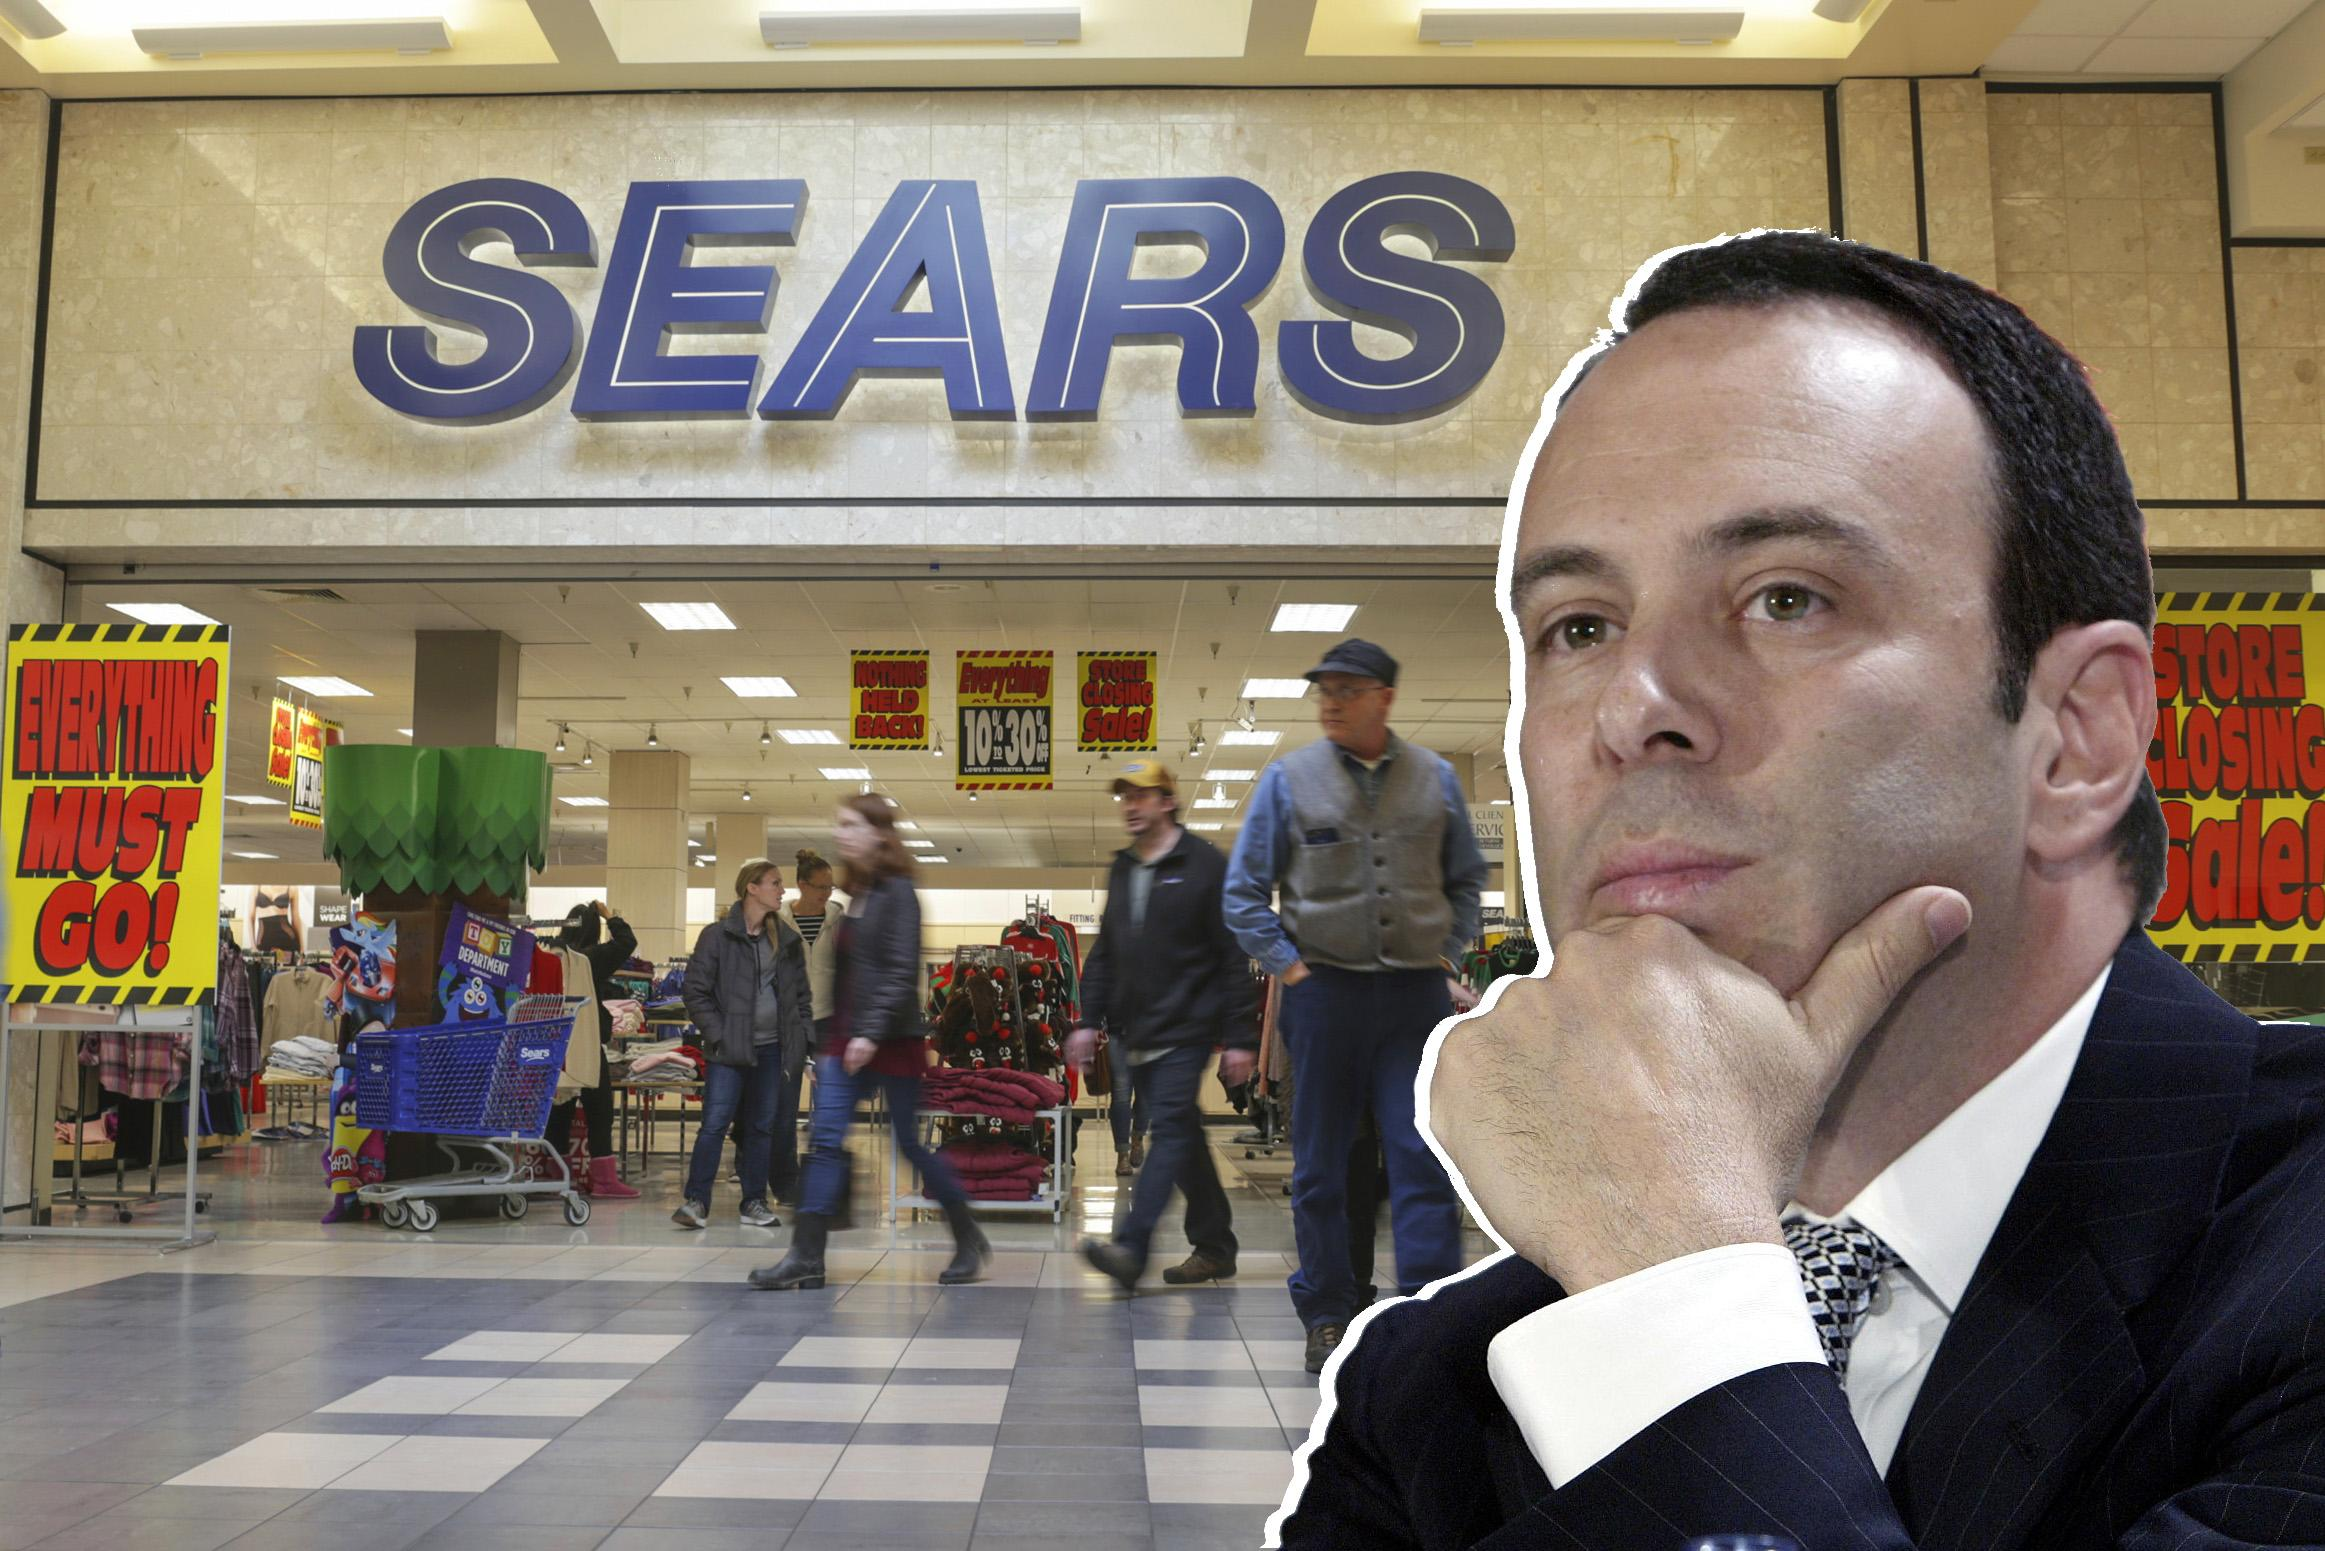 becabbfb5b2 Sears Workers Are Worried About Their Jobs After Eddie Lampert s Takeover